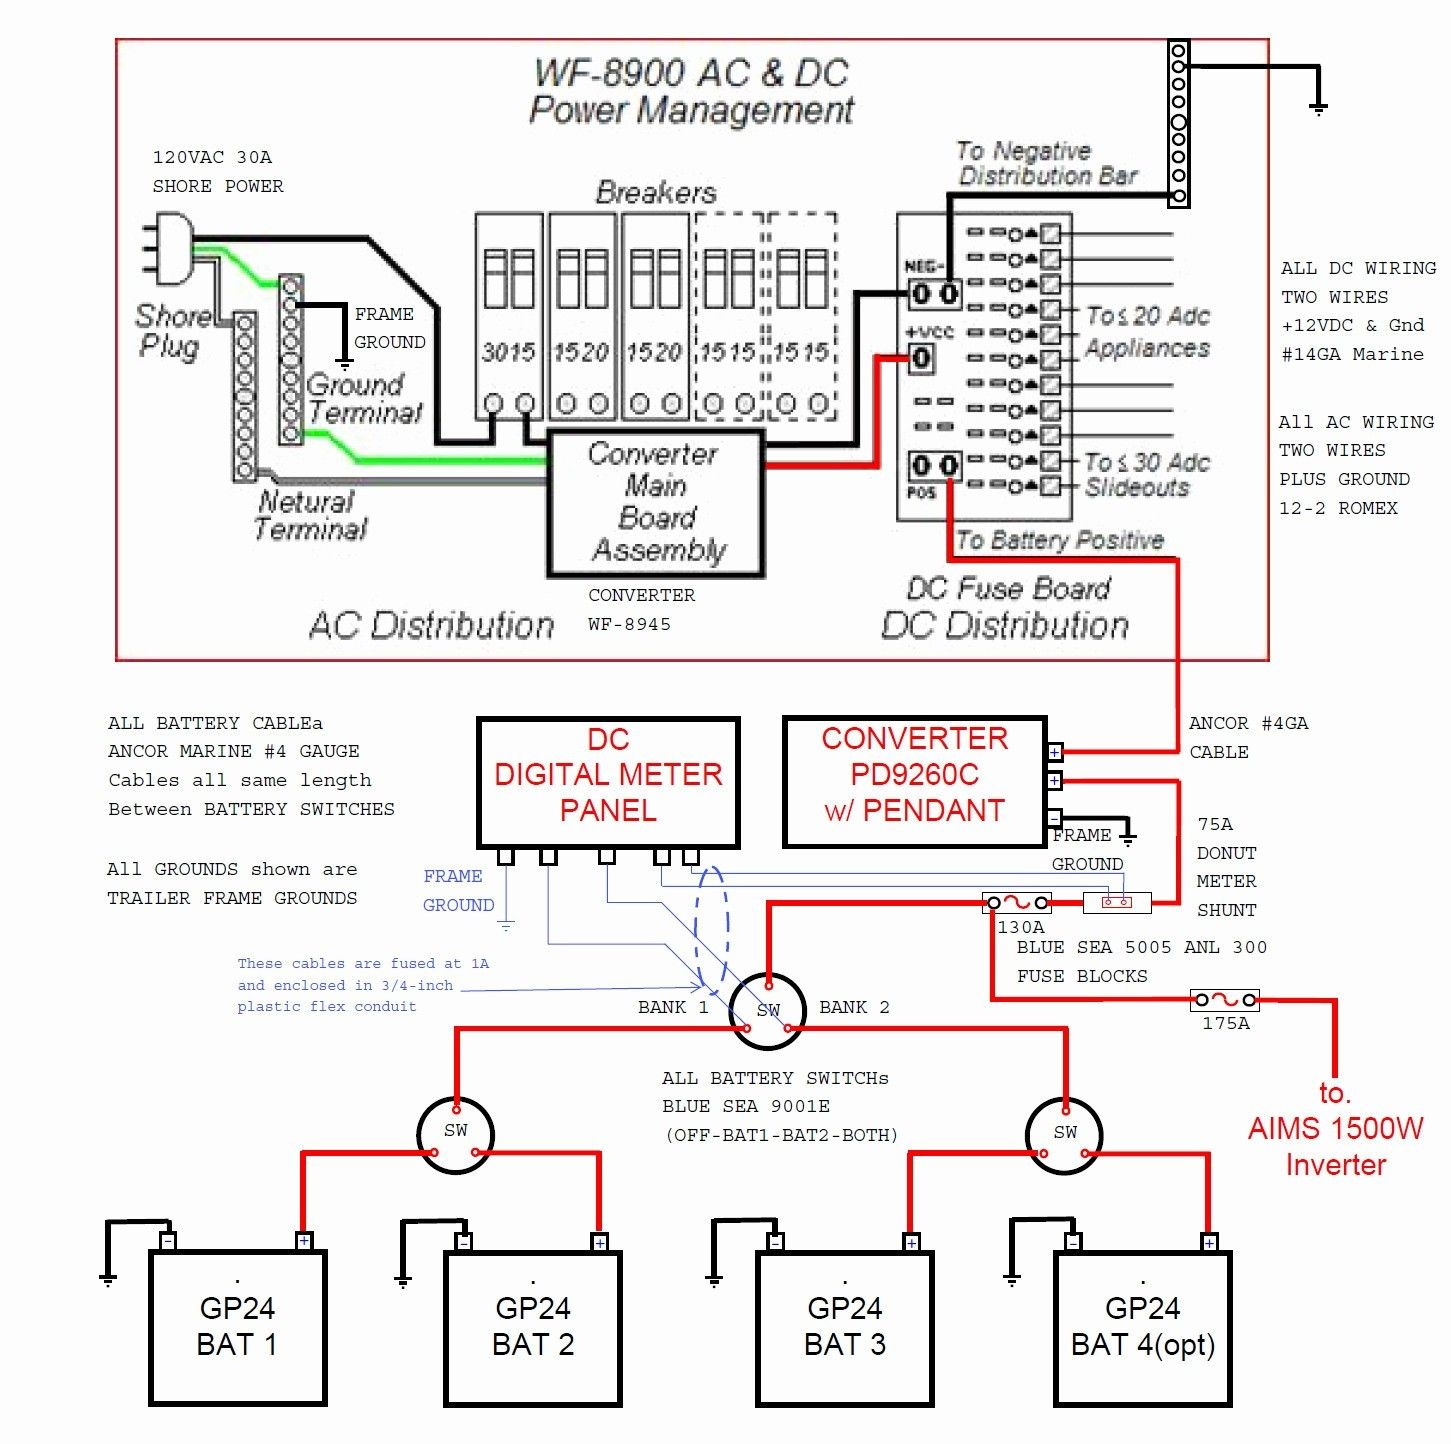 Wiring Diagram For Rv Inverter - Wiring Diagram Sessions on